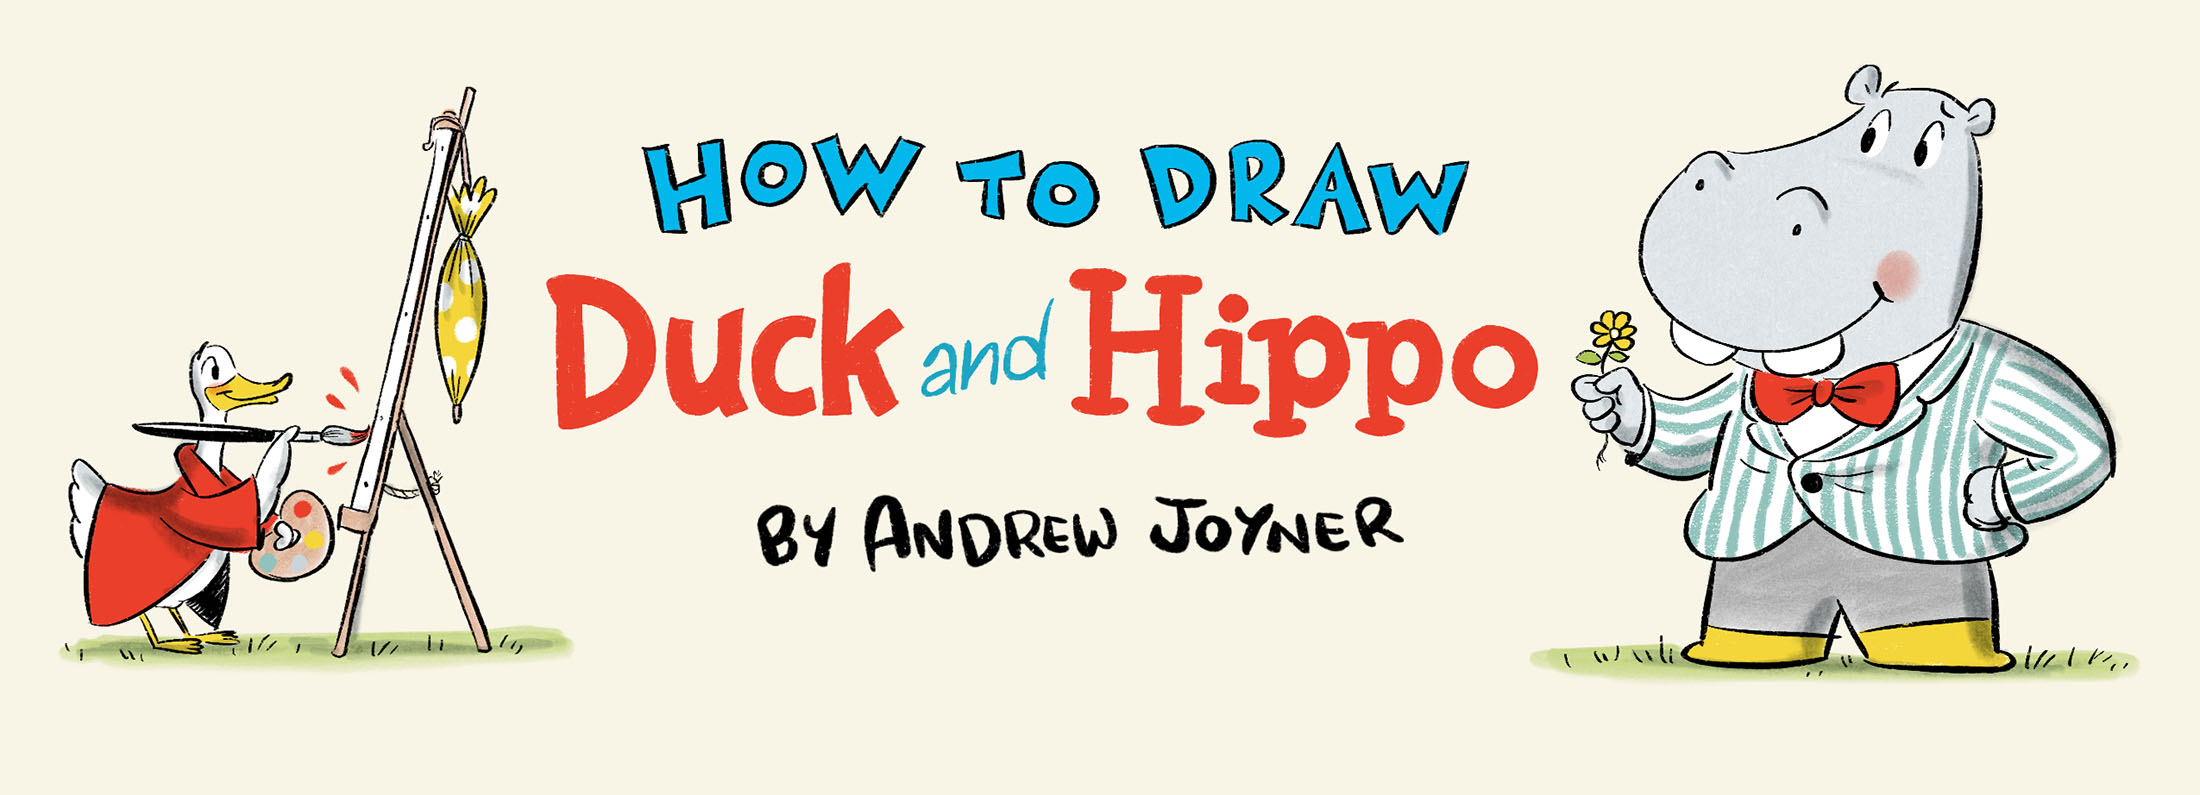 How_to_Draw_Duck_and_Hippo_Frame1.jpg